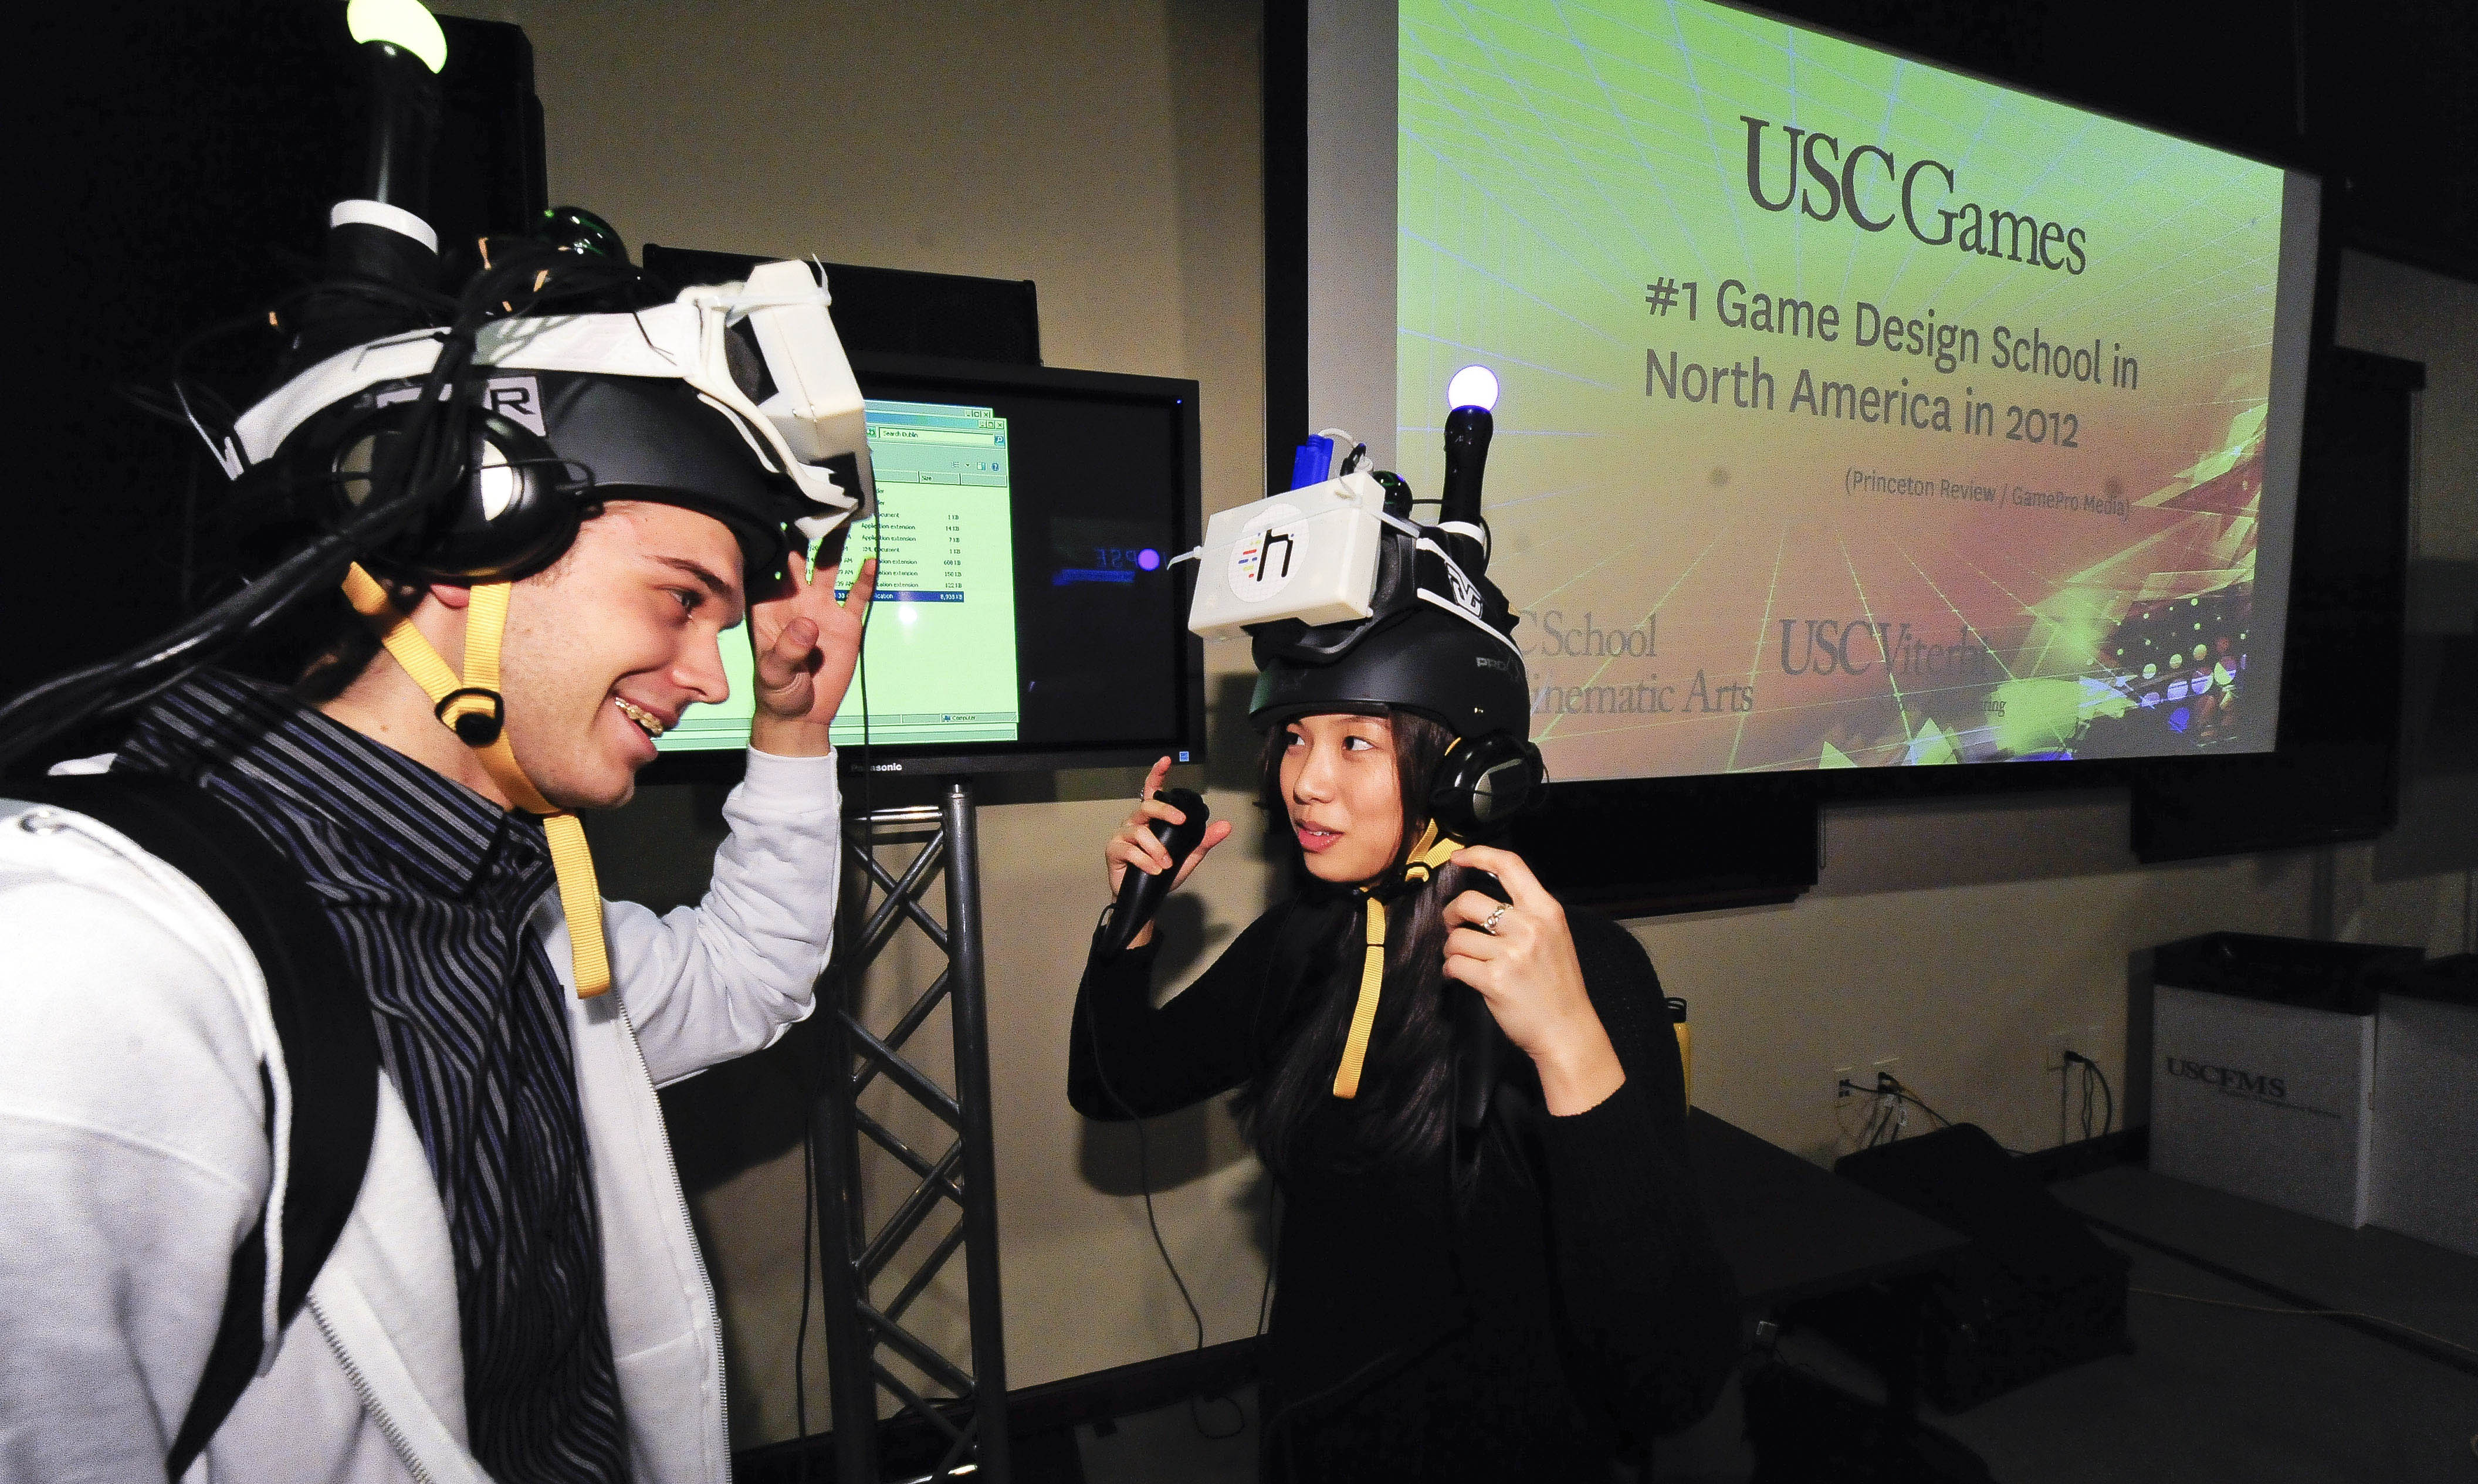 Project Holodeck's lead developer Alexander Silkin, left, and Janice Chang try out Wild Skies, an immersive 360 degree virtual reality program. (Photo/Gus Ruelas)